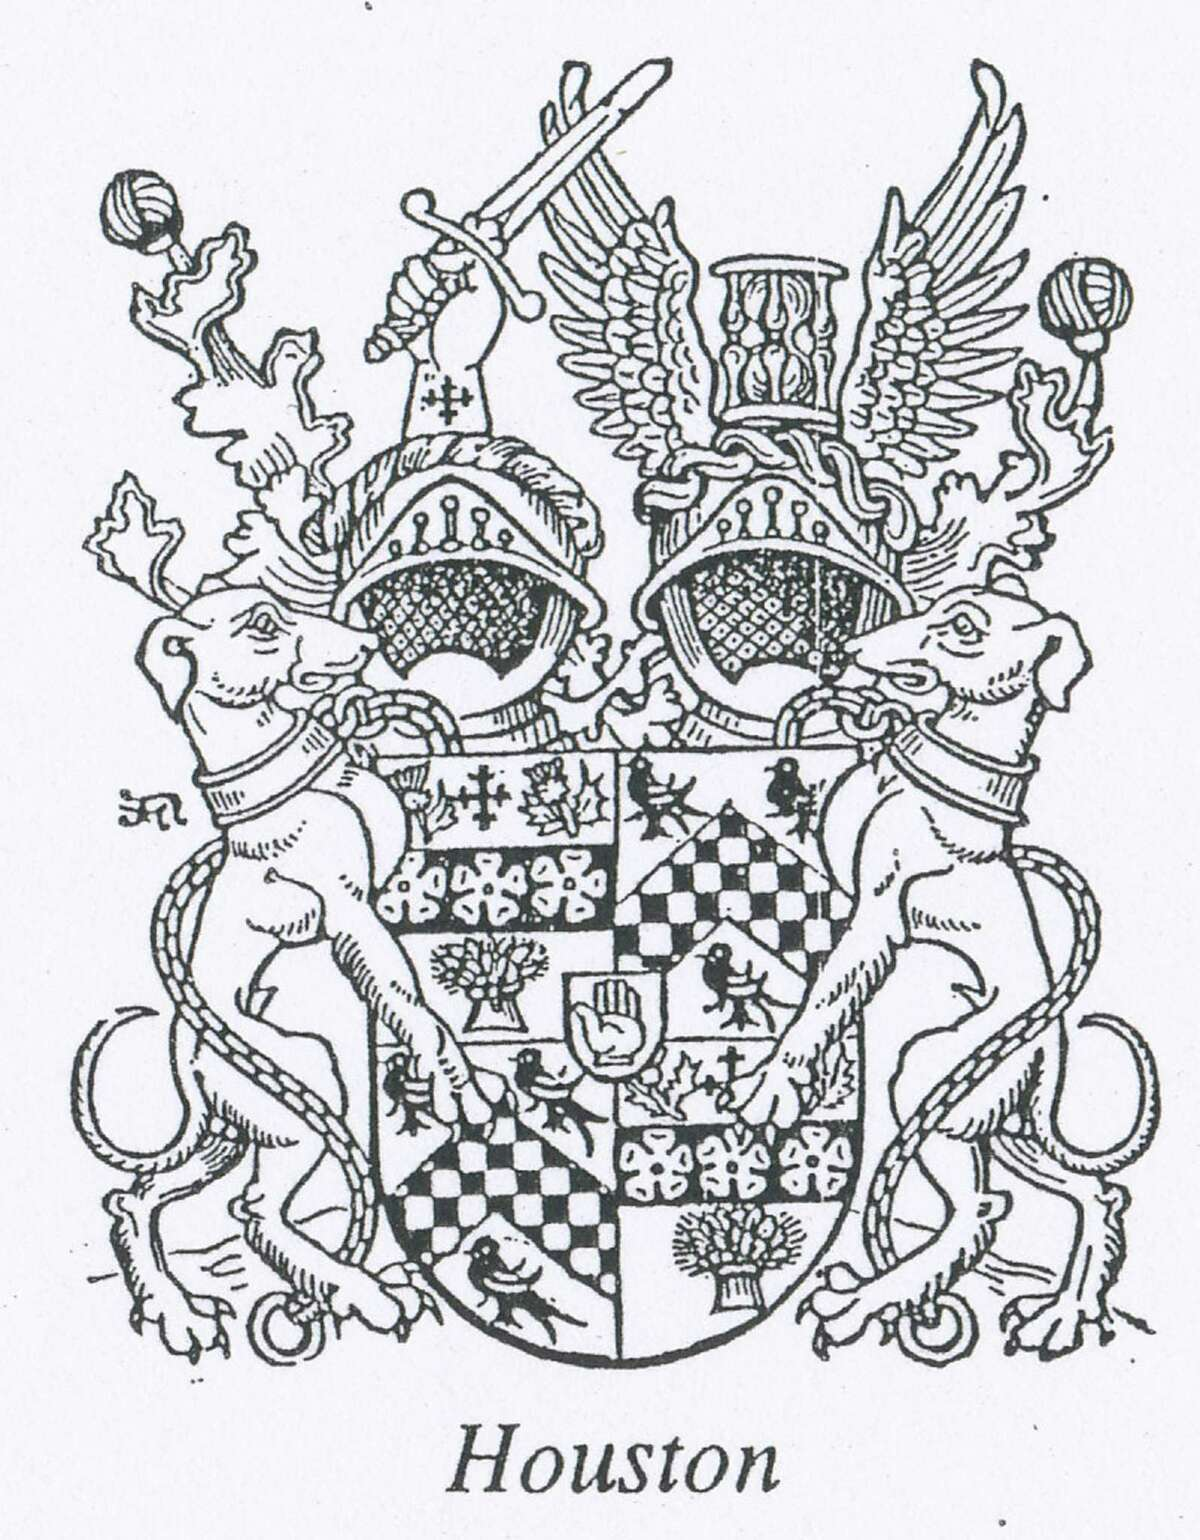 The coat of arms for the Houston family when they were of nobility in Scotland.